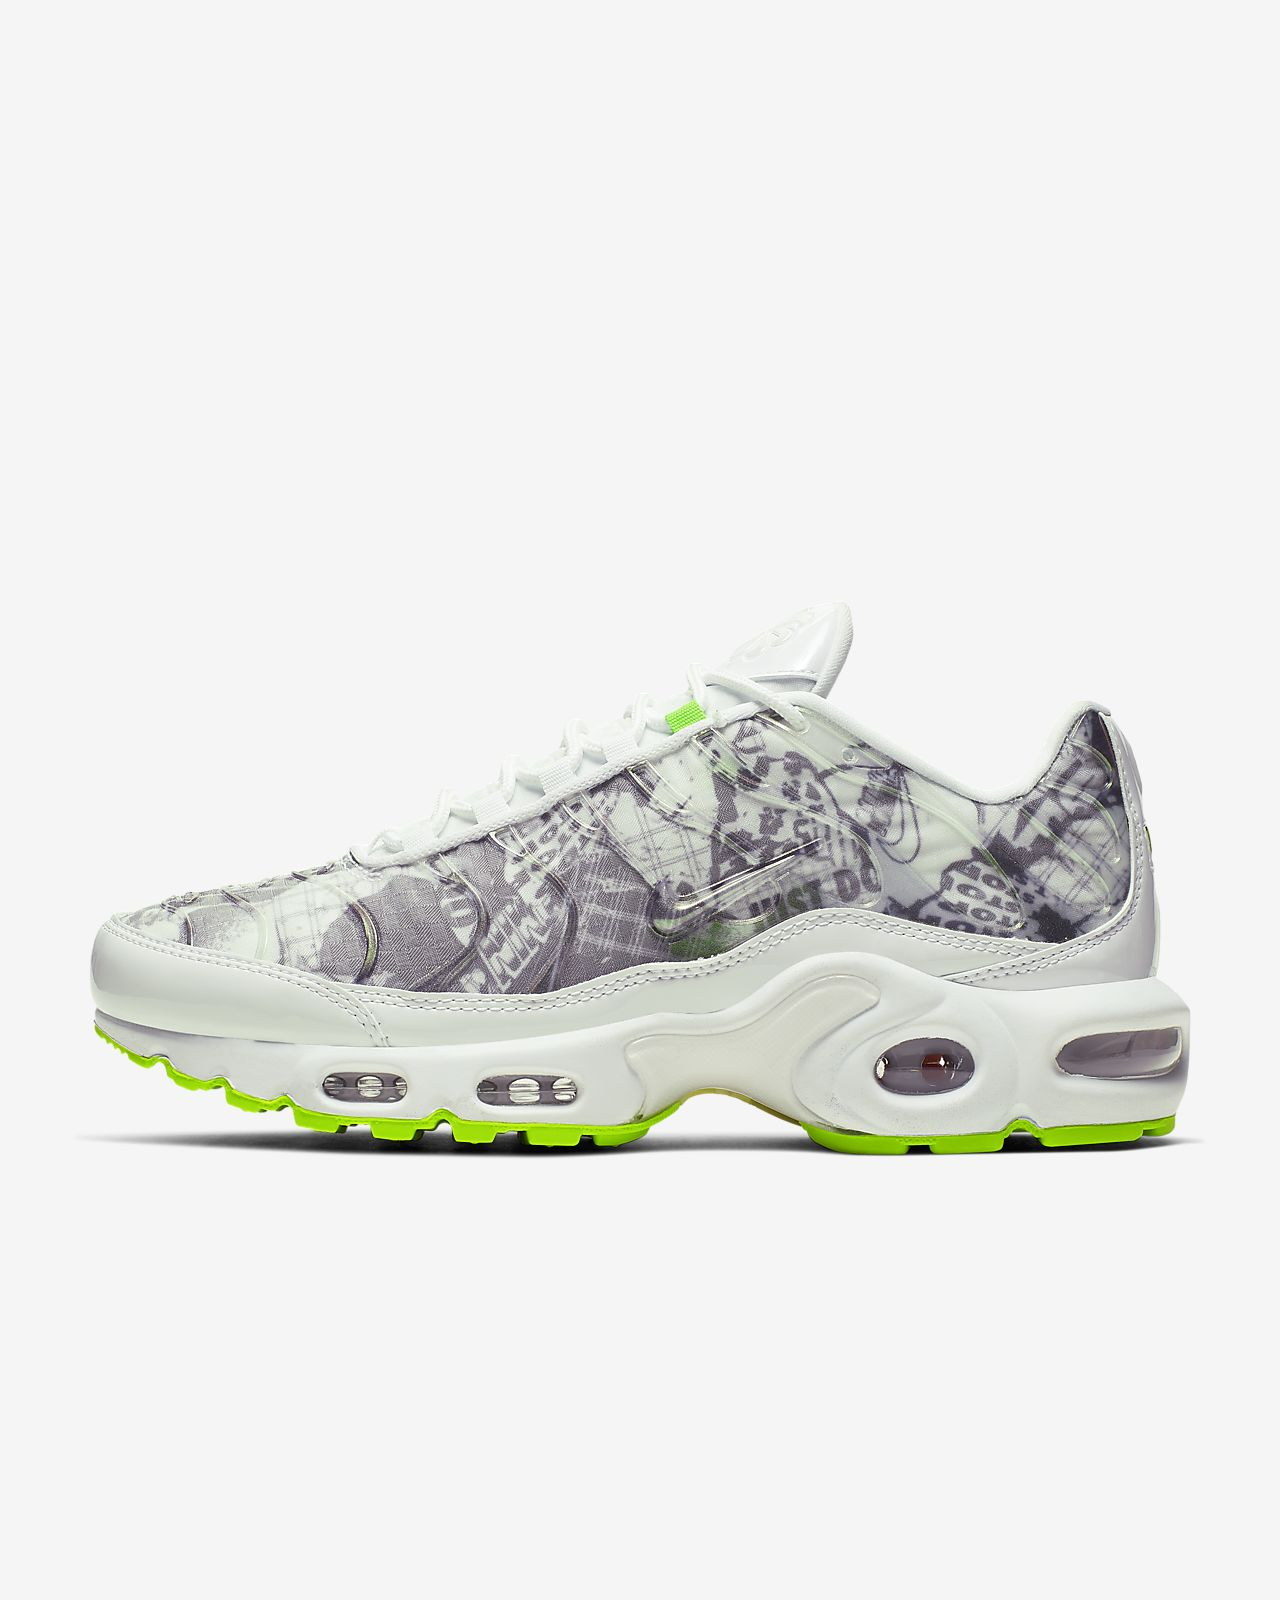 promo code ef463 bb5a9 Nike Air Max Plus LX Women's Shoe